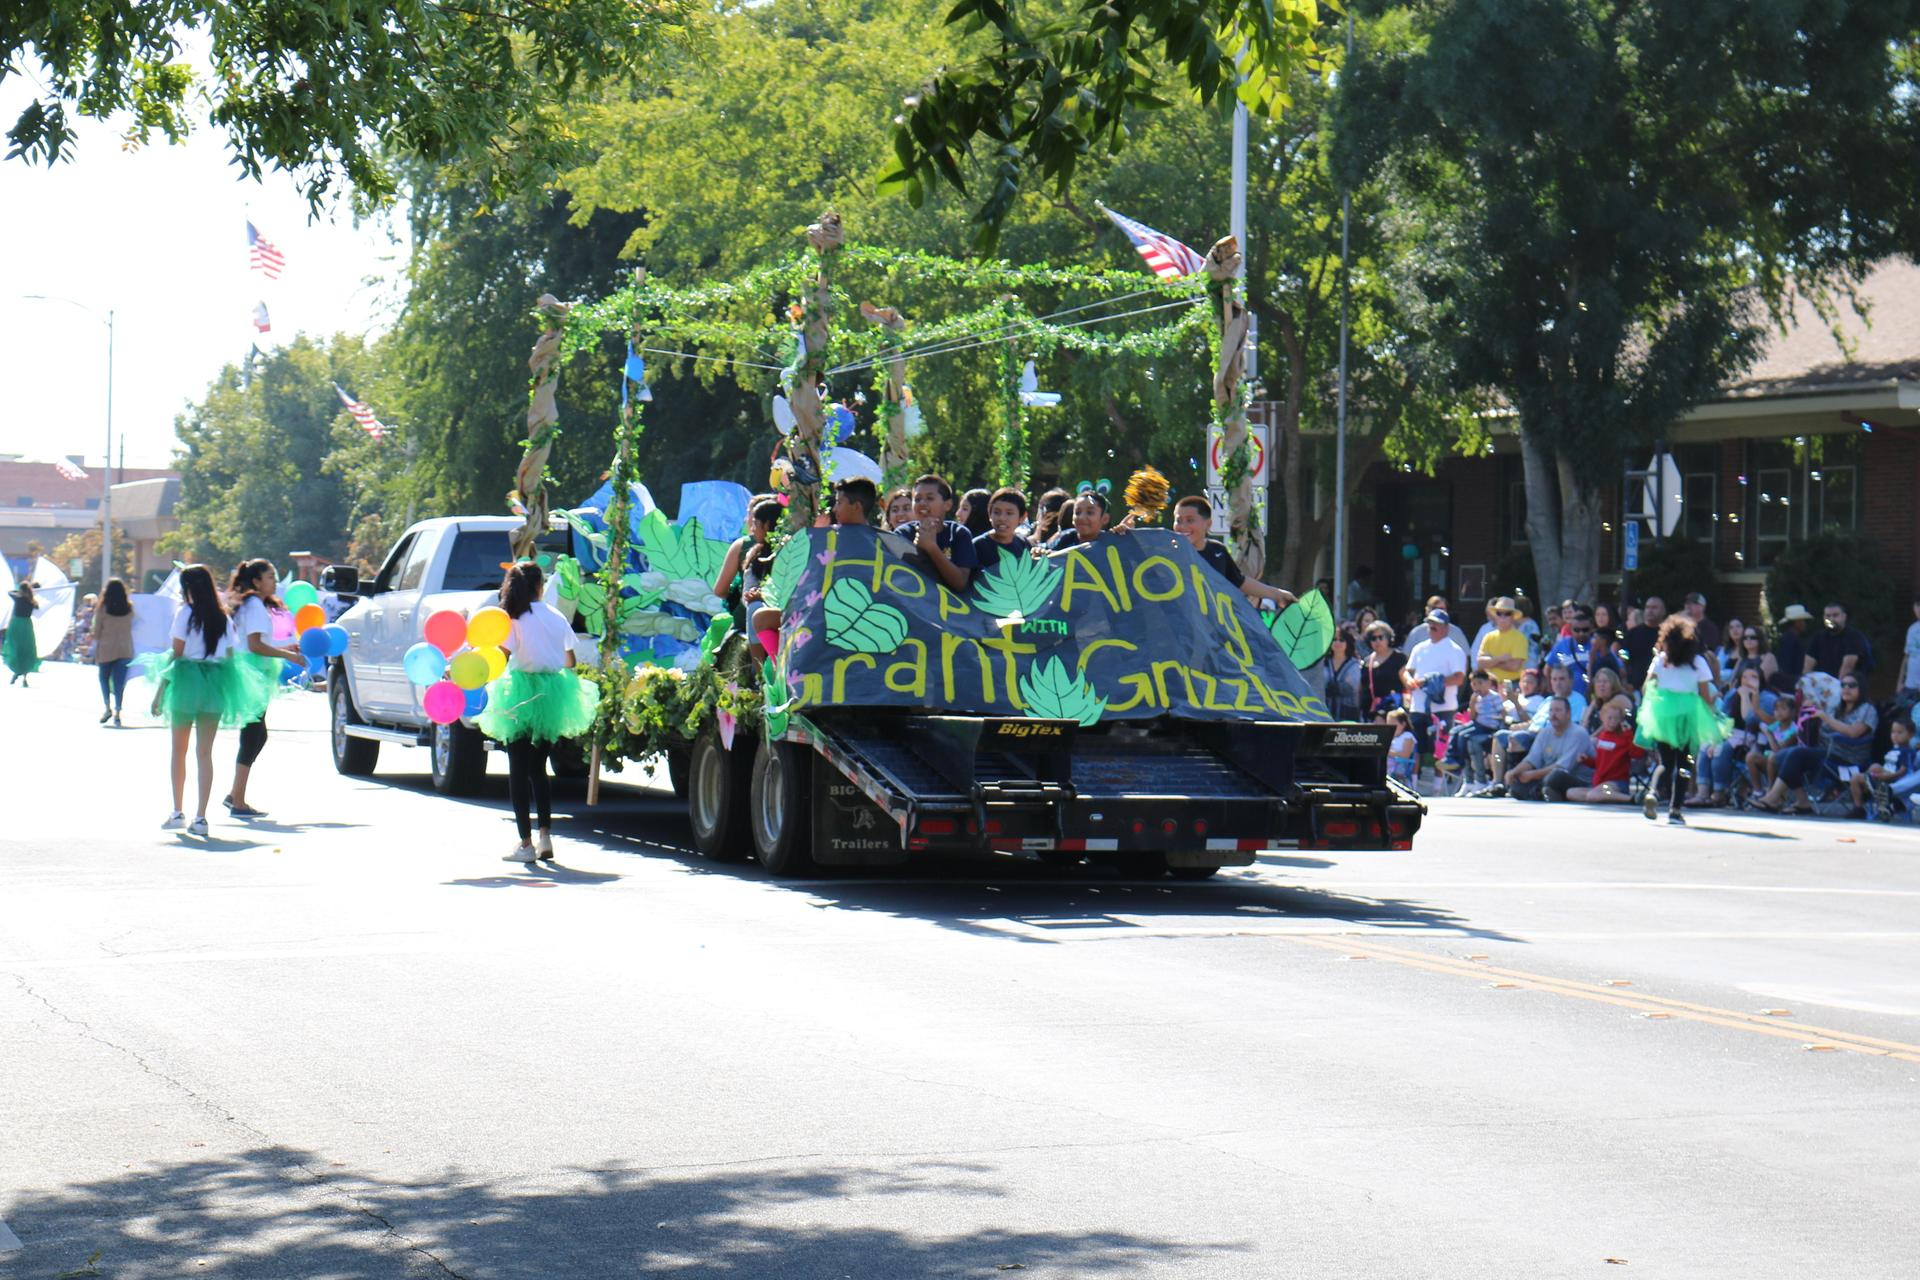 Grant Float in the Reedley Fiesta Parade